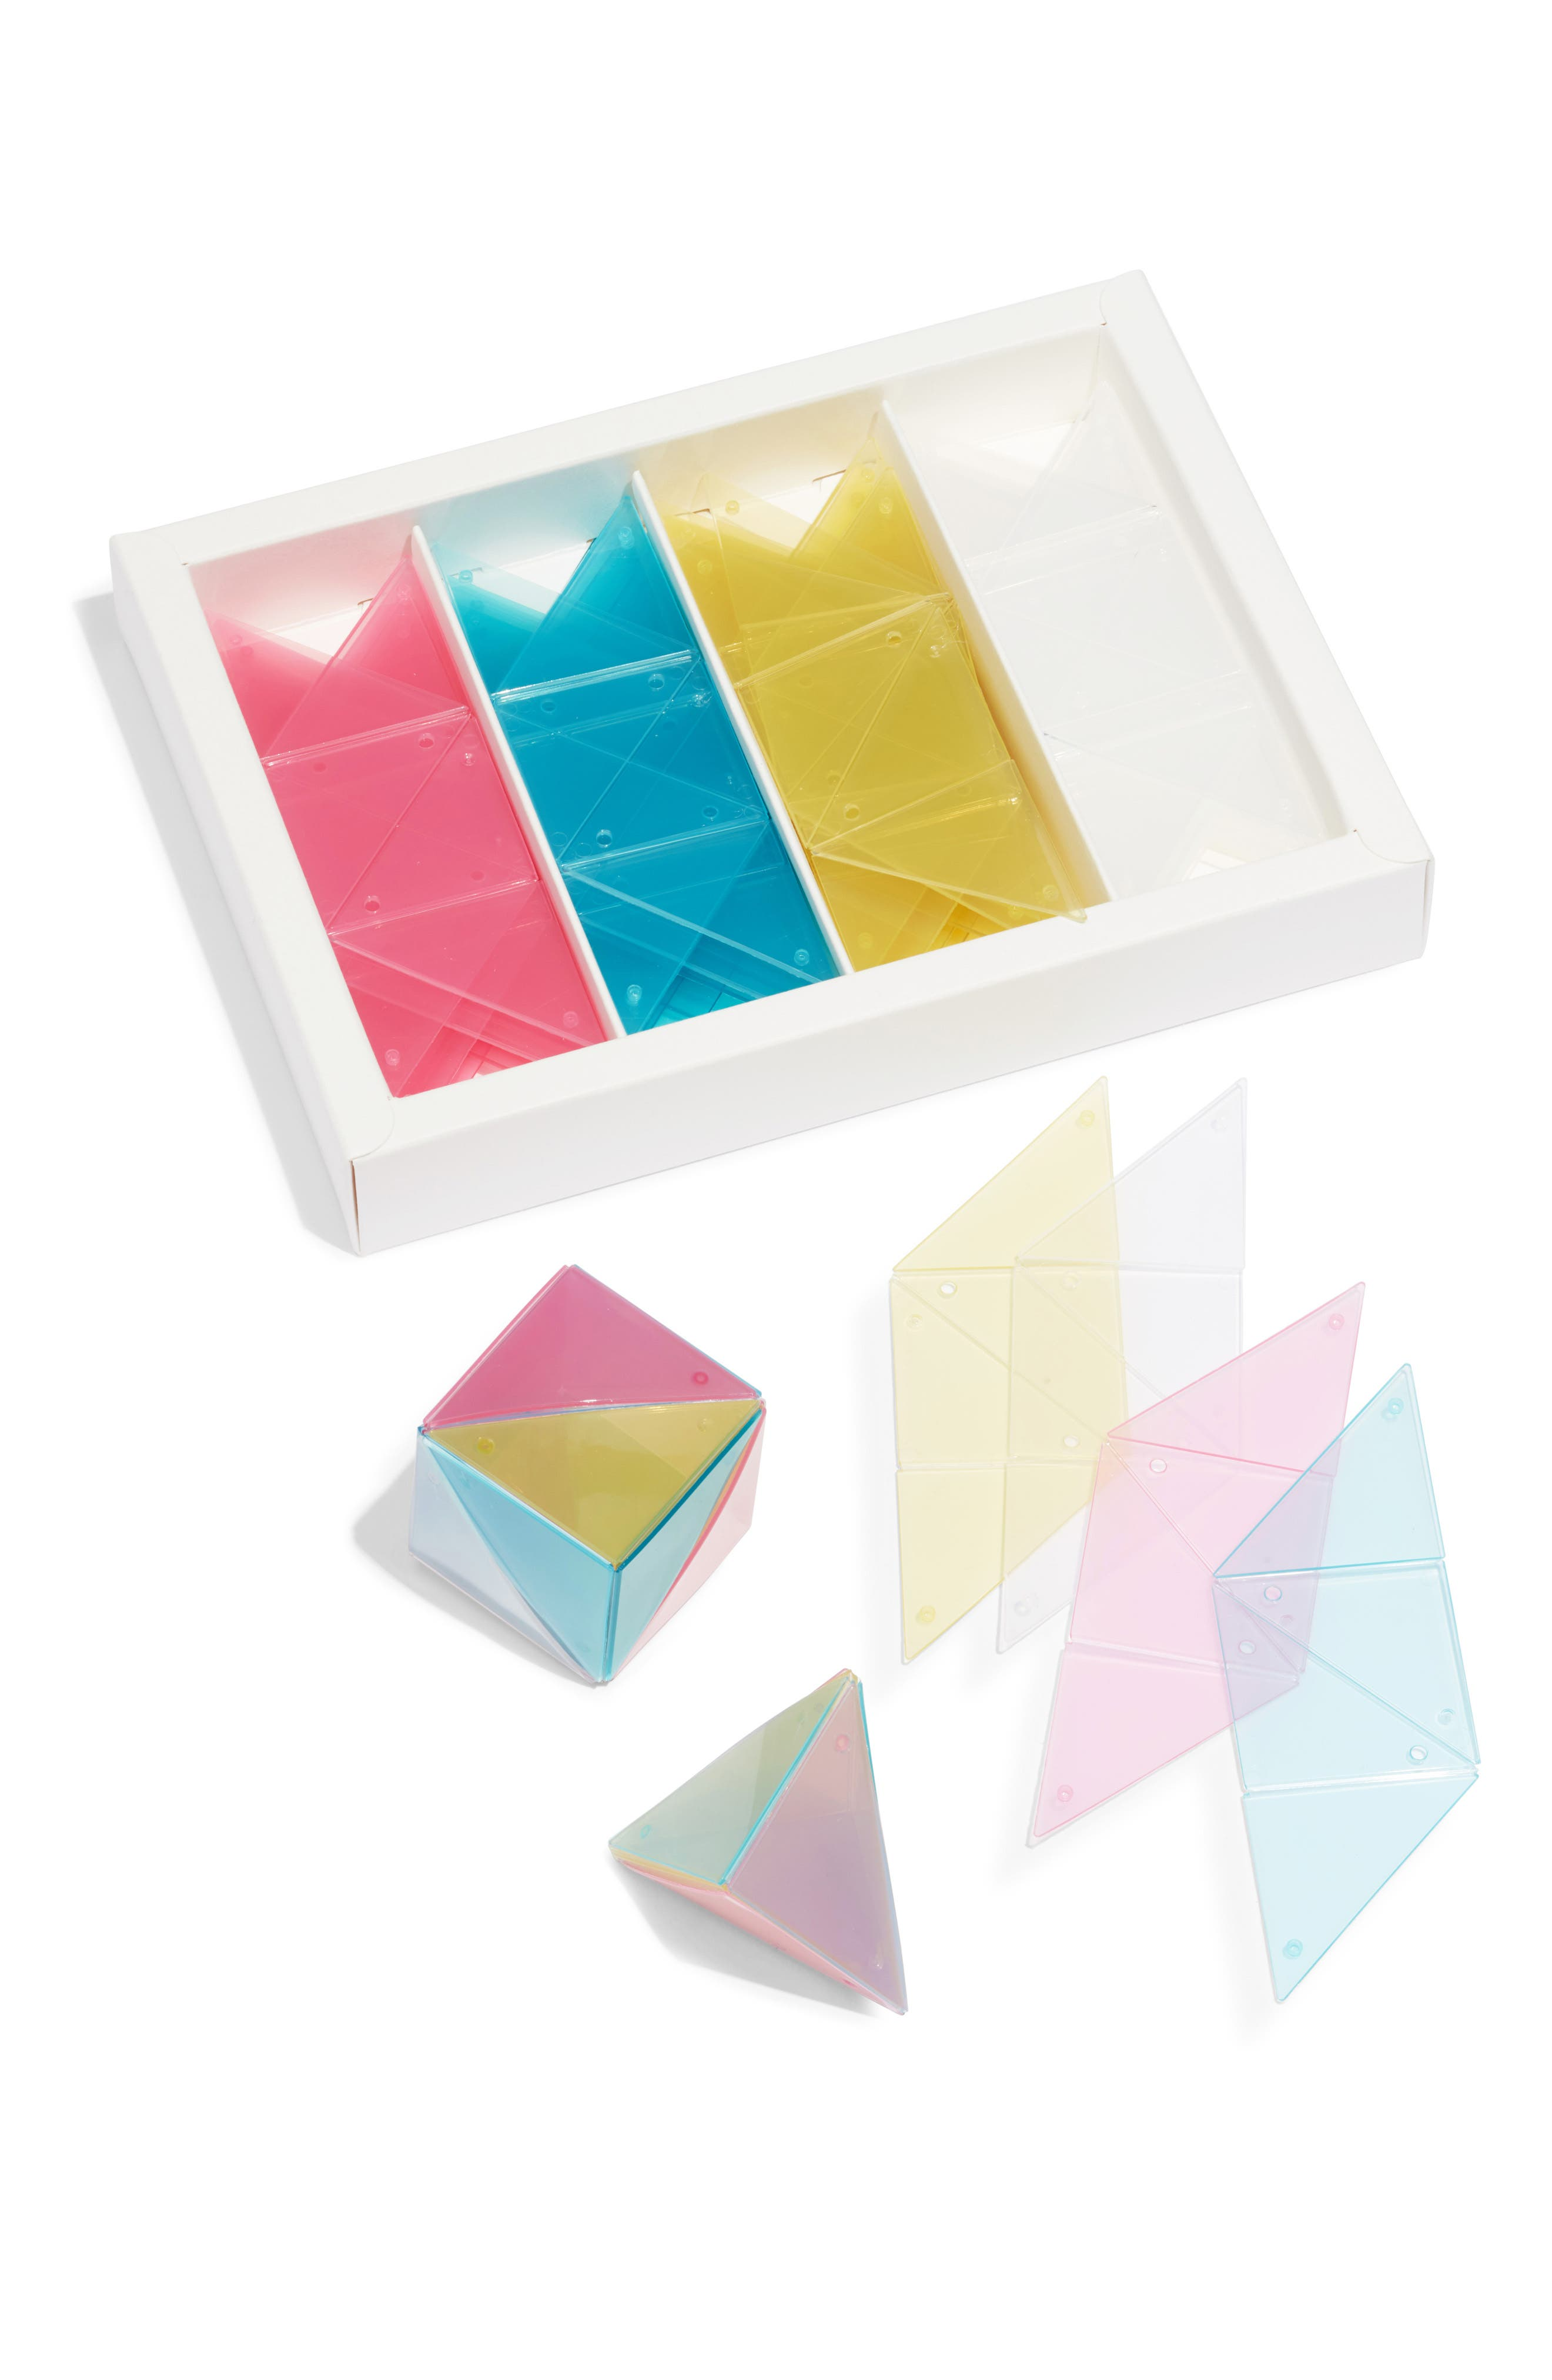 3D Origami Puzzle Game,                         Main,                         color, MULTI COLOR